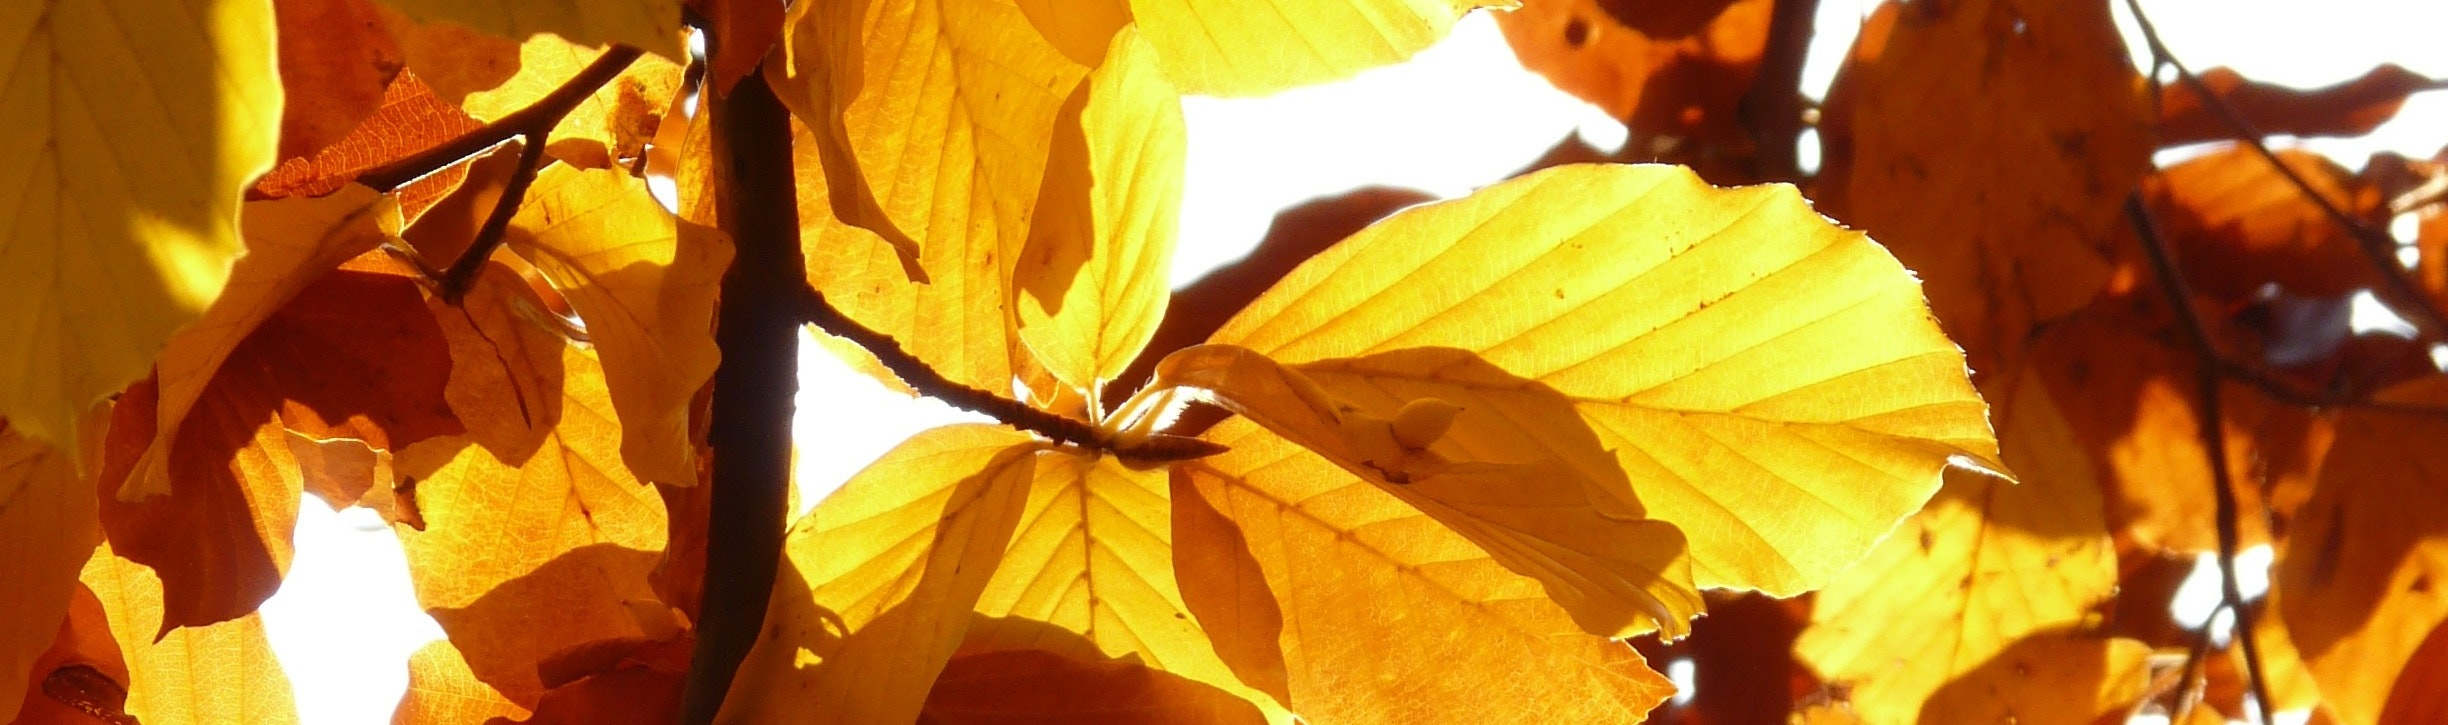 autumn-leaves-branch-close-up-65898.jpg